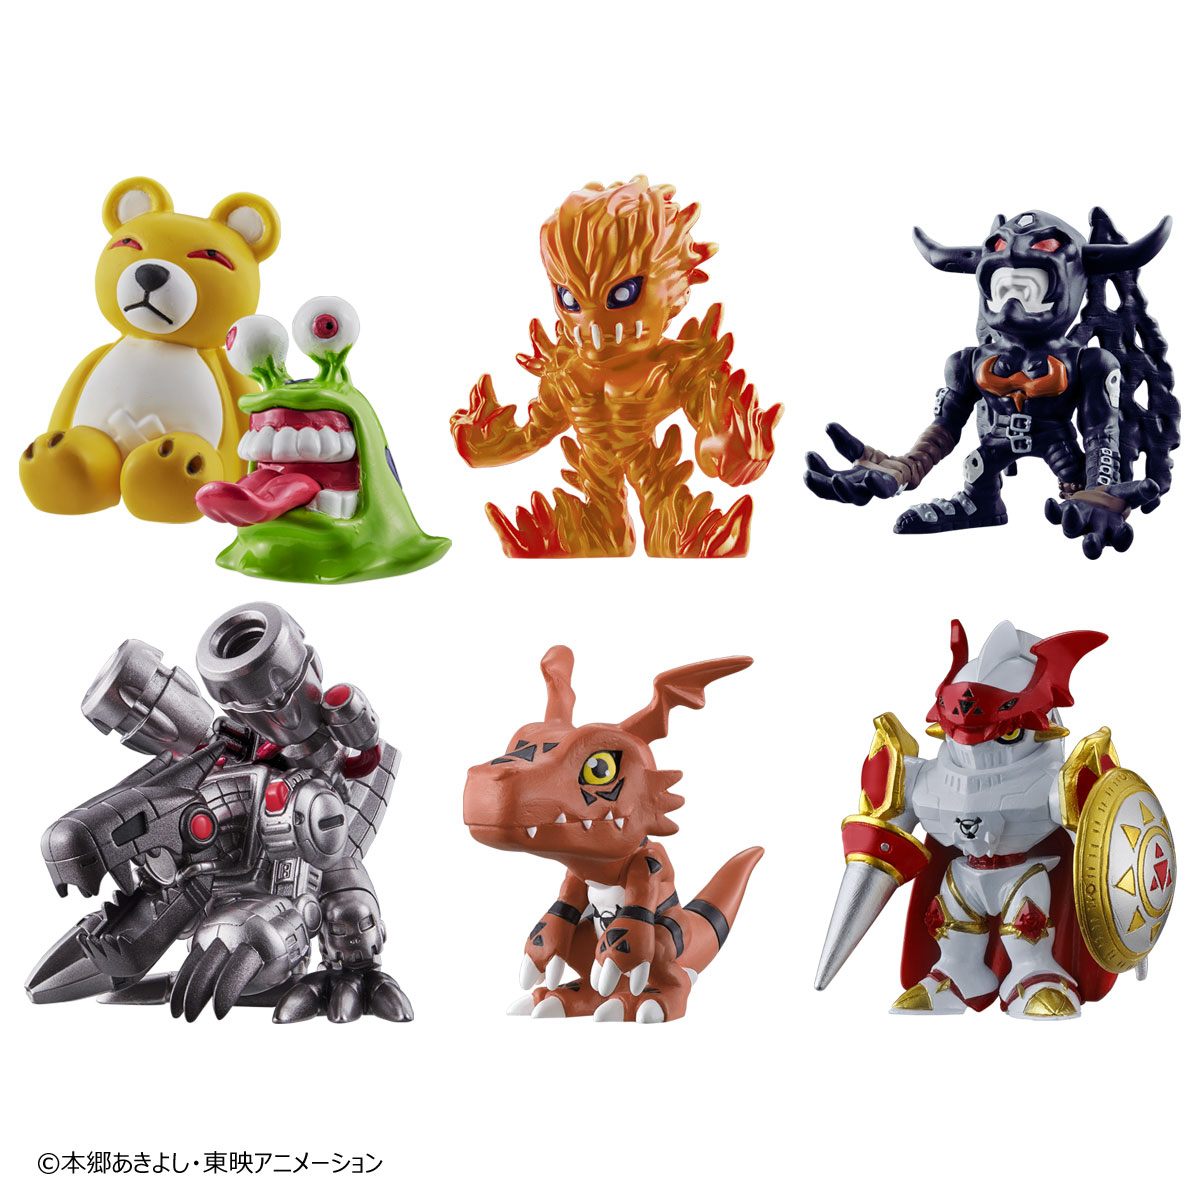 THE DIGIMON NEW COLLECTION Vol.2